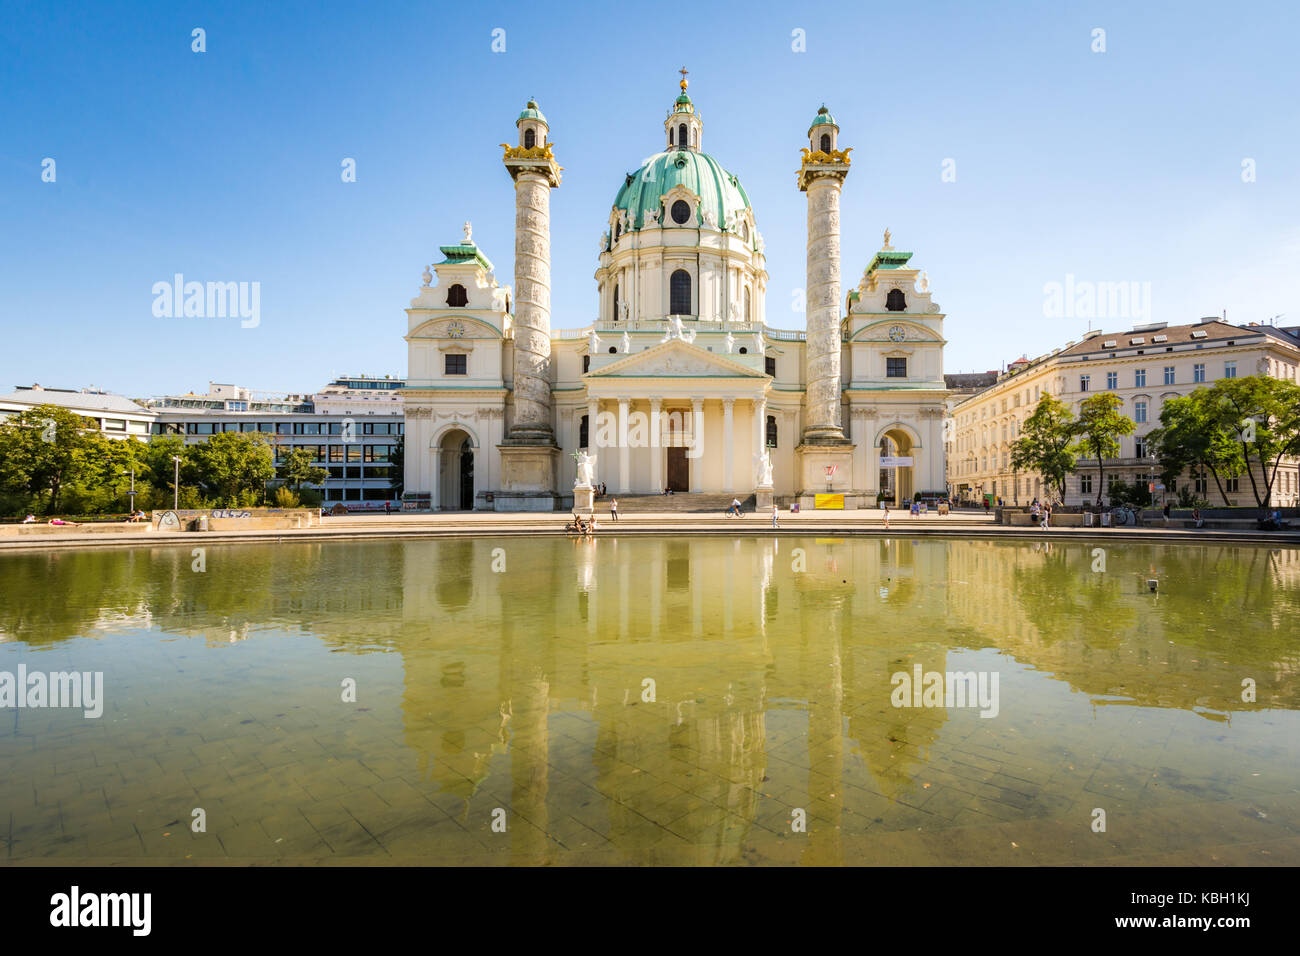 VIENNA, AUSTRIA - AUGUST 29: Tourists at the Baroque Karlskirche in Vienna, Austria on August 29, 2017. The church - Stock Image